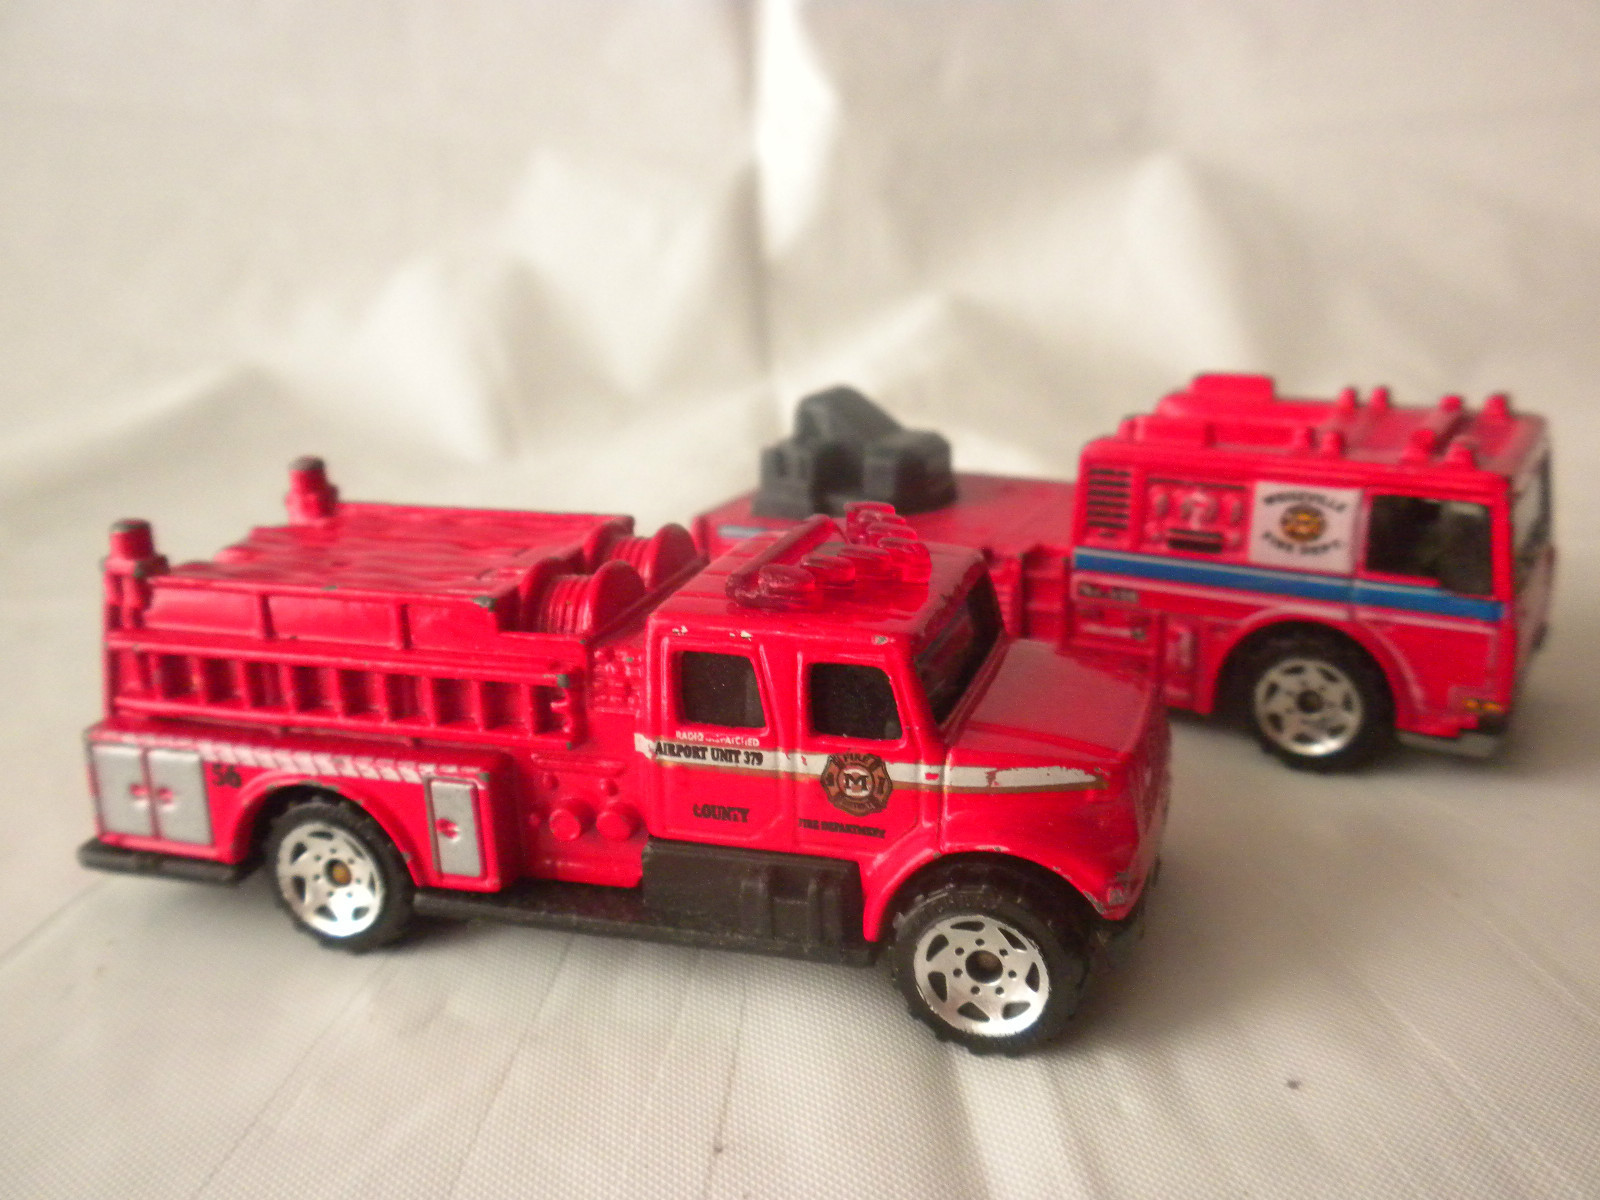 Lot of 2 Matchbox International Pumper Red Fire Engine Fire Truck